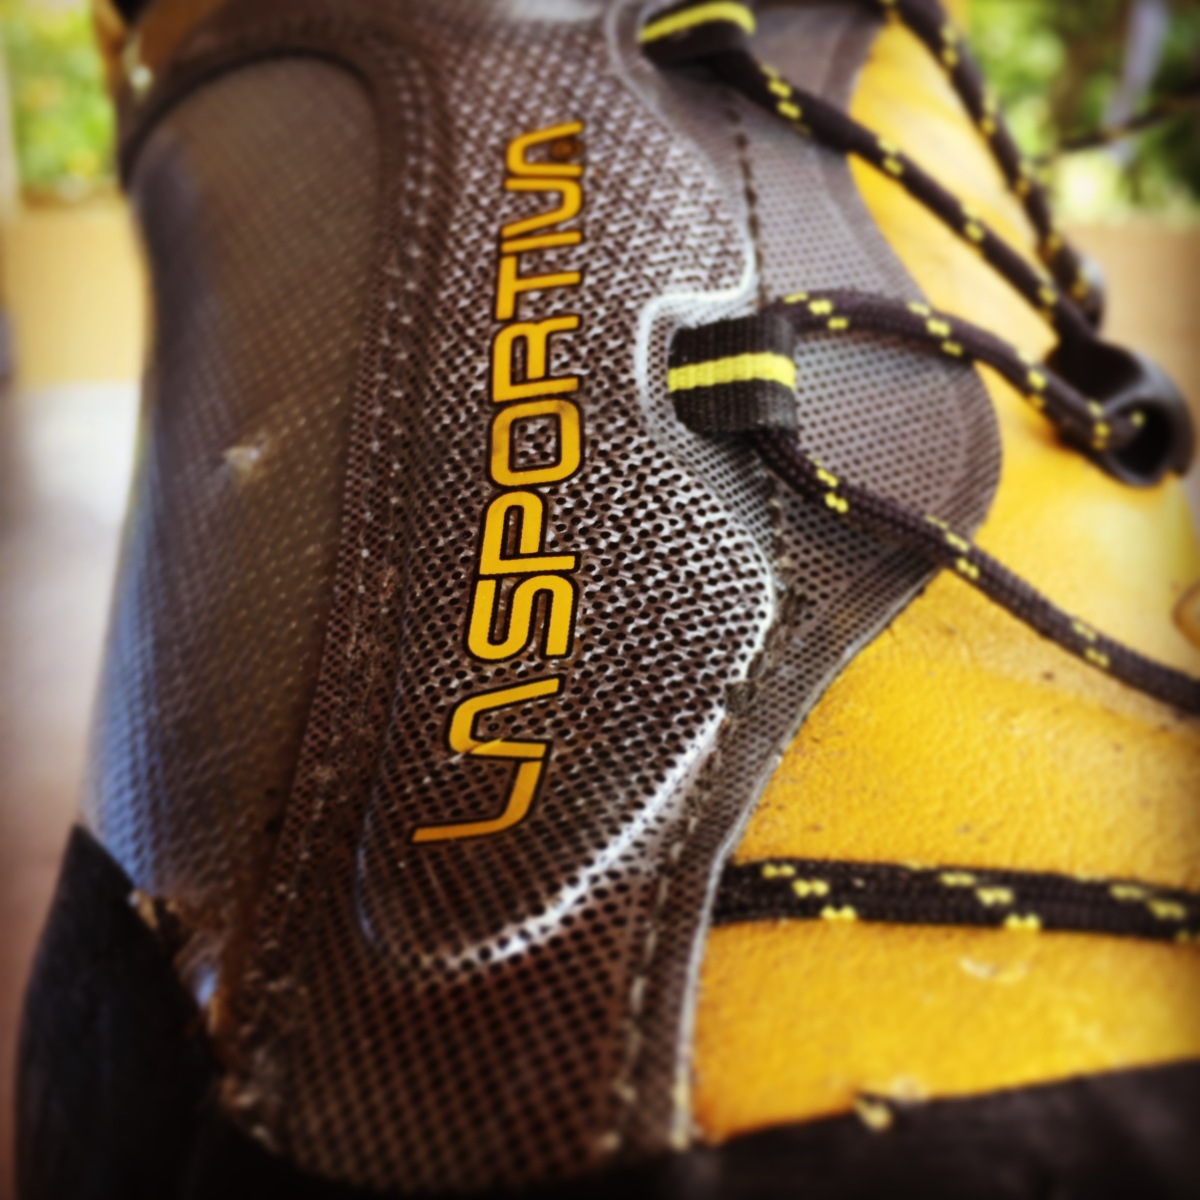 La Sportiva Spantik - Review